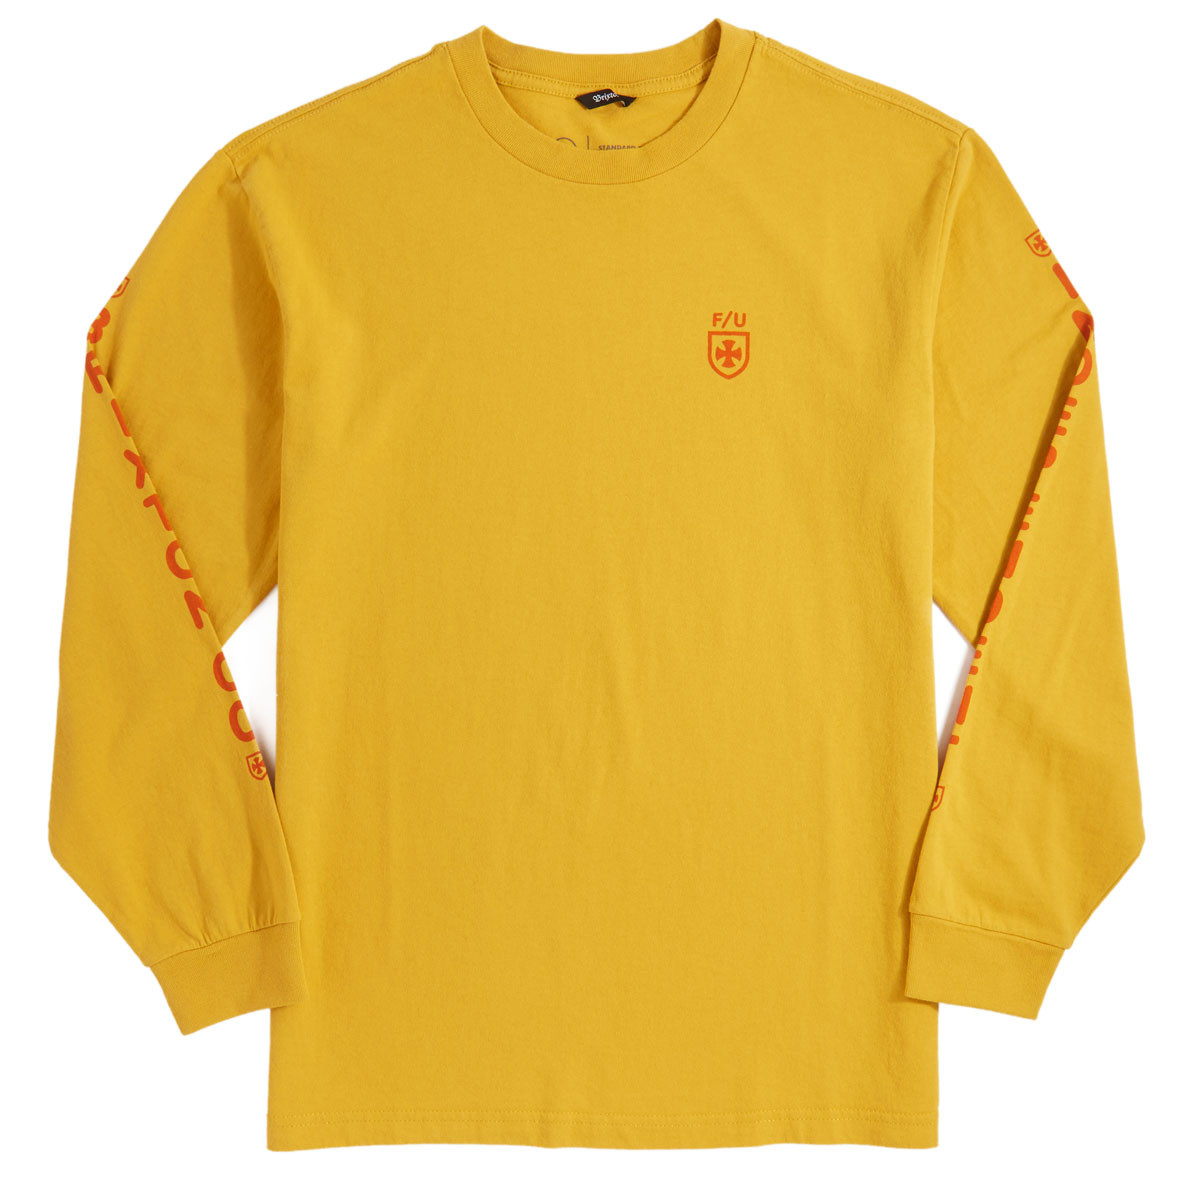 T Shirt Frame Brixton X Independent Frame Long Sleeve T Shirt Yellow